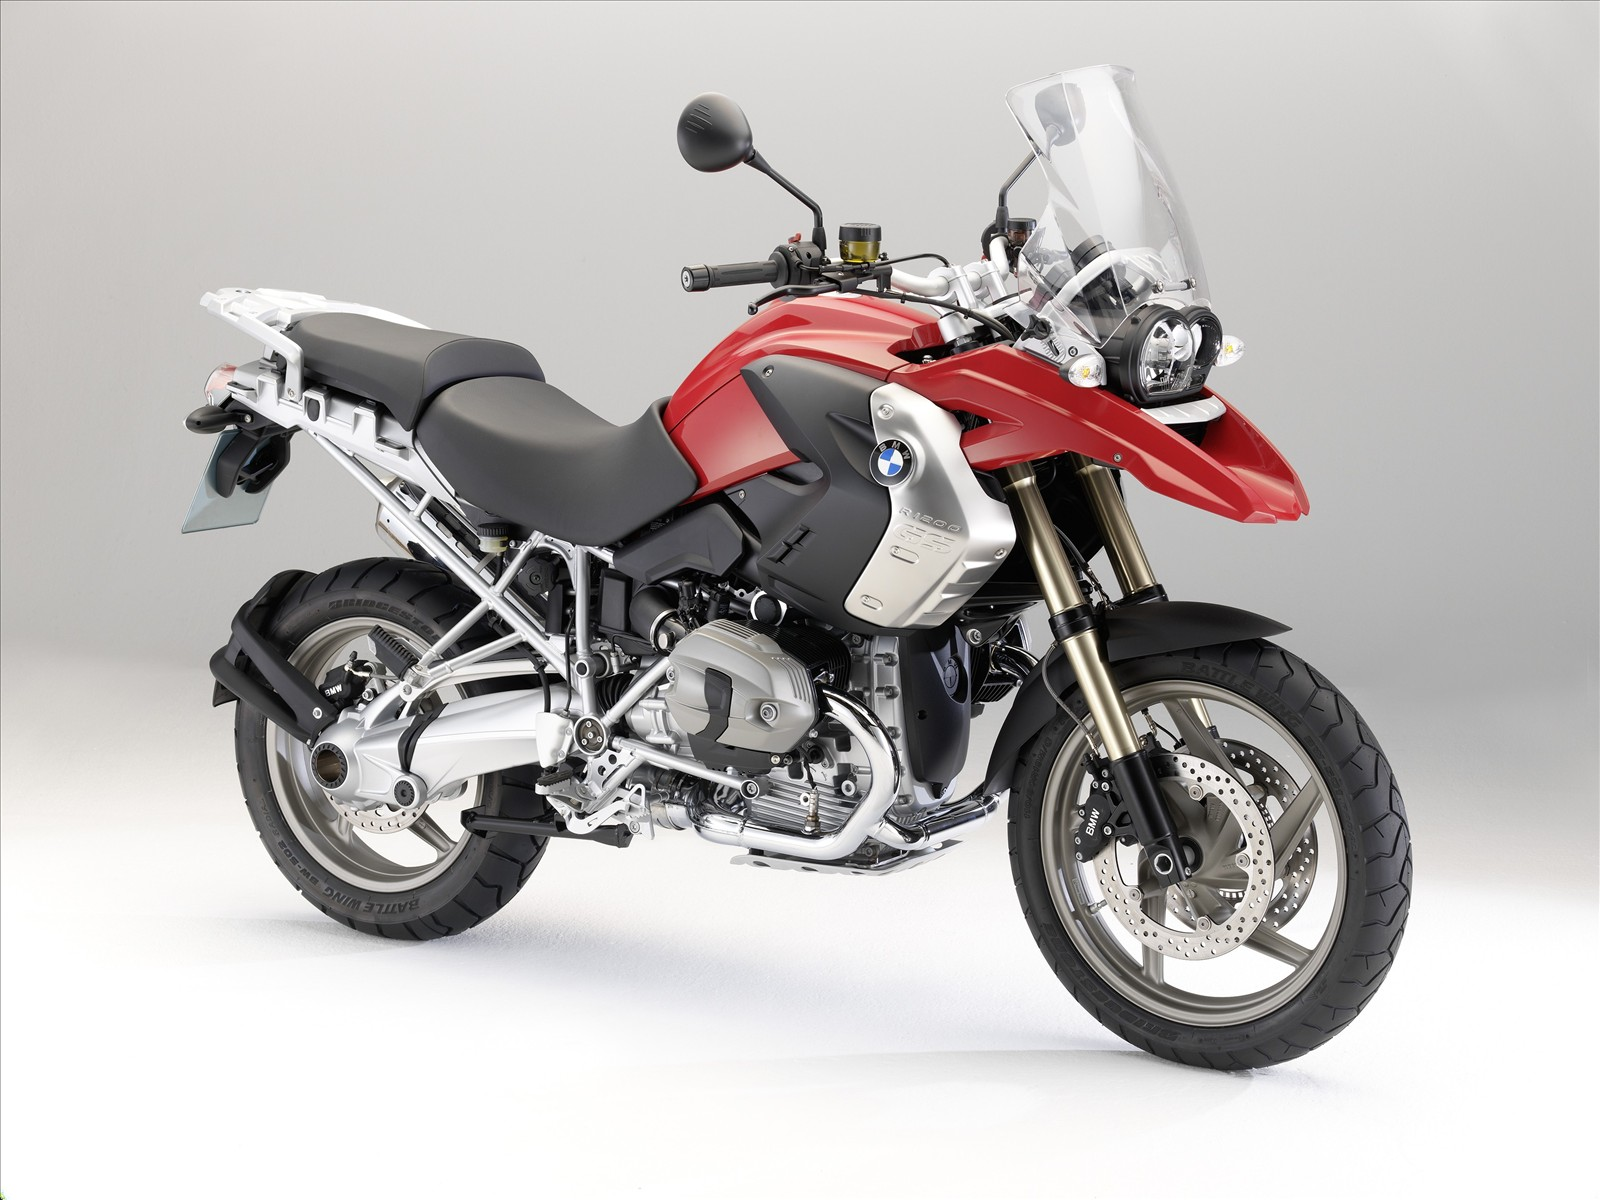 http://1.bp.blogspot.com/_71VYESfu88A/SwIG1HjMqvI/AAAAAAAABN0/5led9C__Tes/s1600/The-New-BMW-R-1200-GS-Adventure-20.jpg